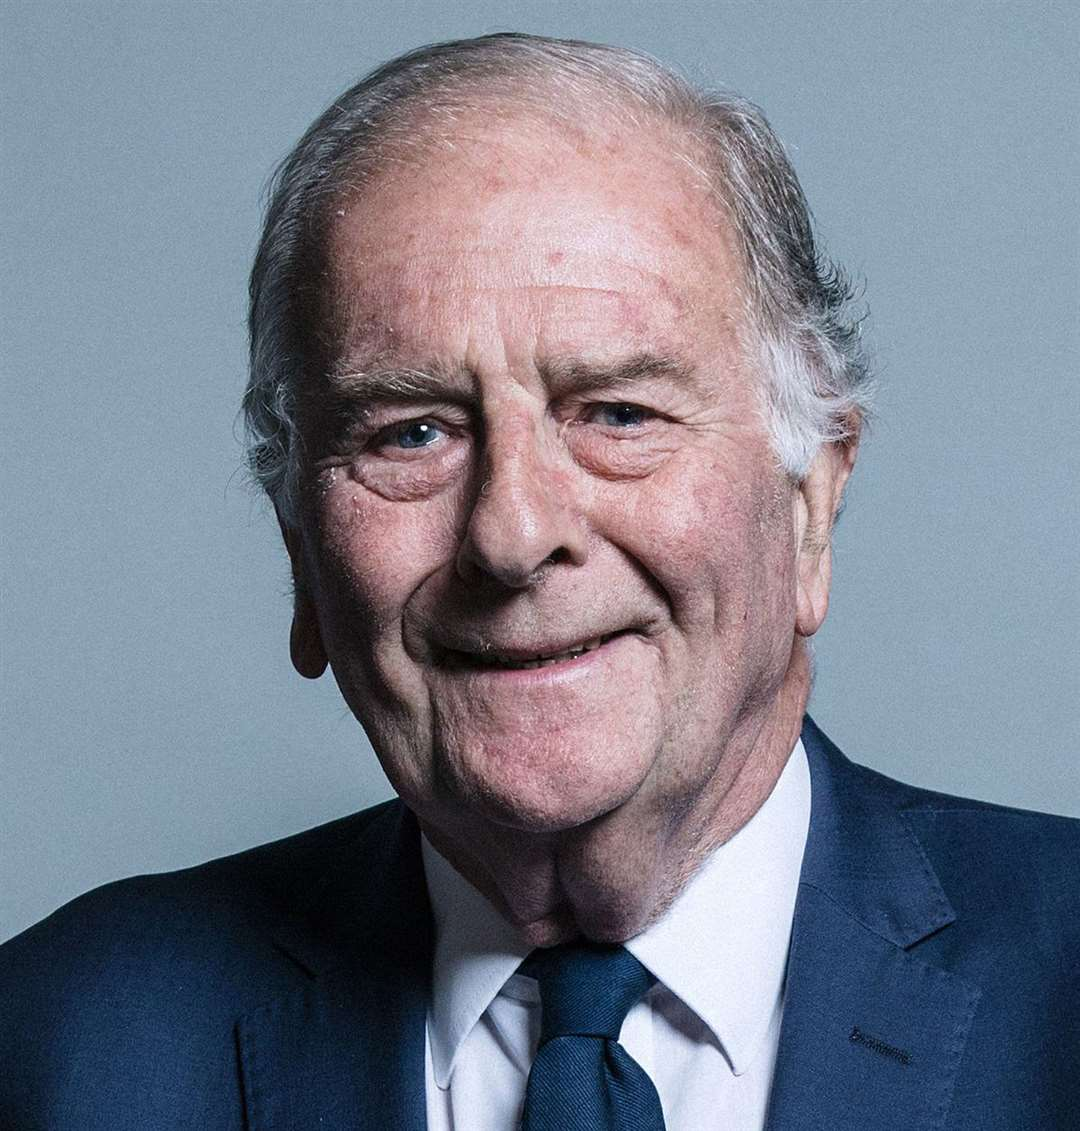 North Thanet MP Sir Roger Gale